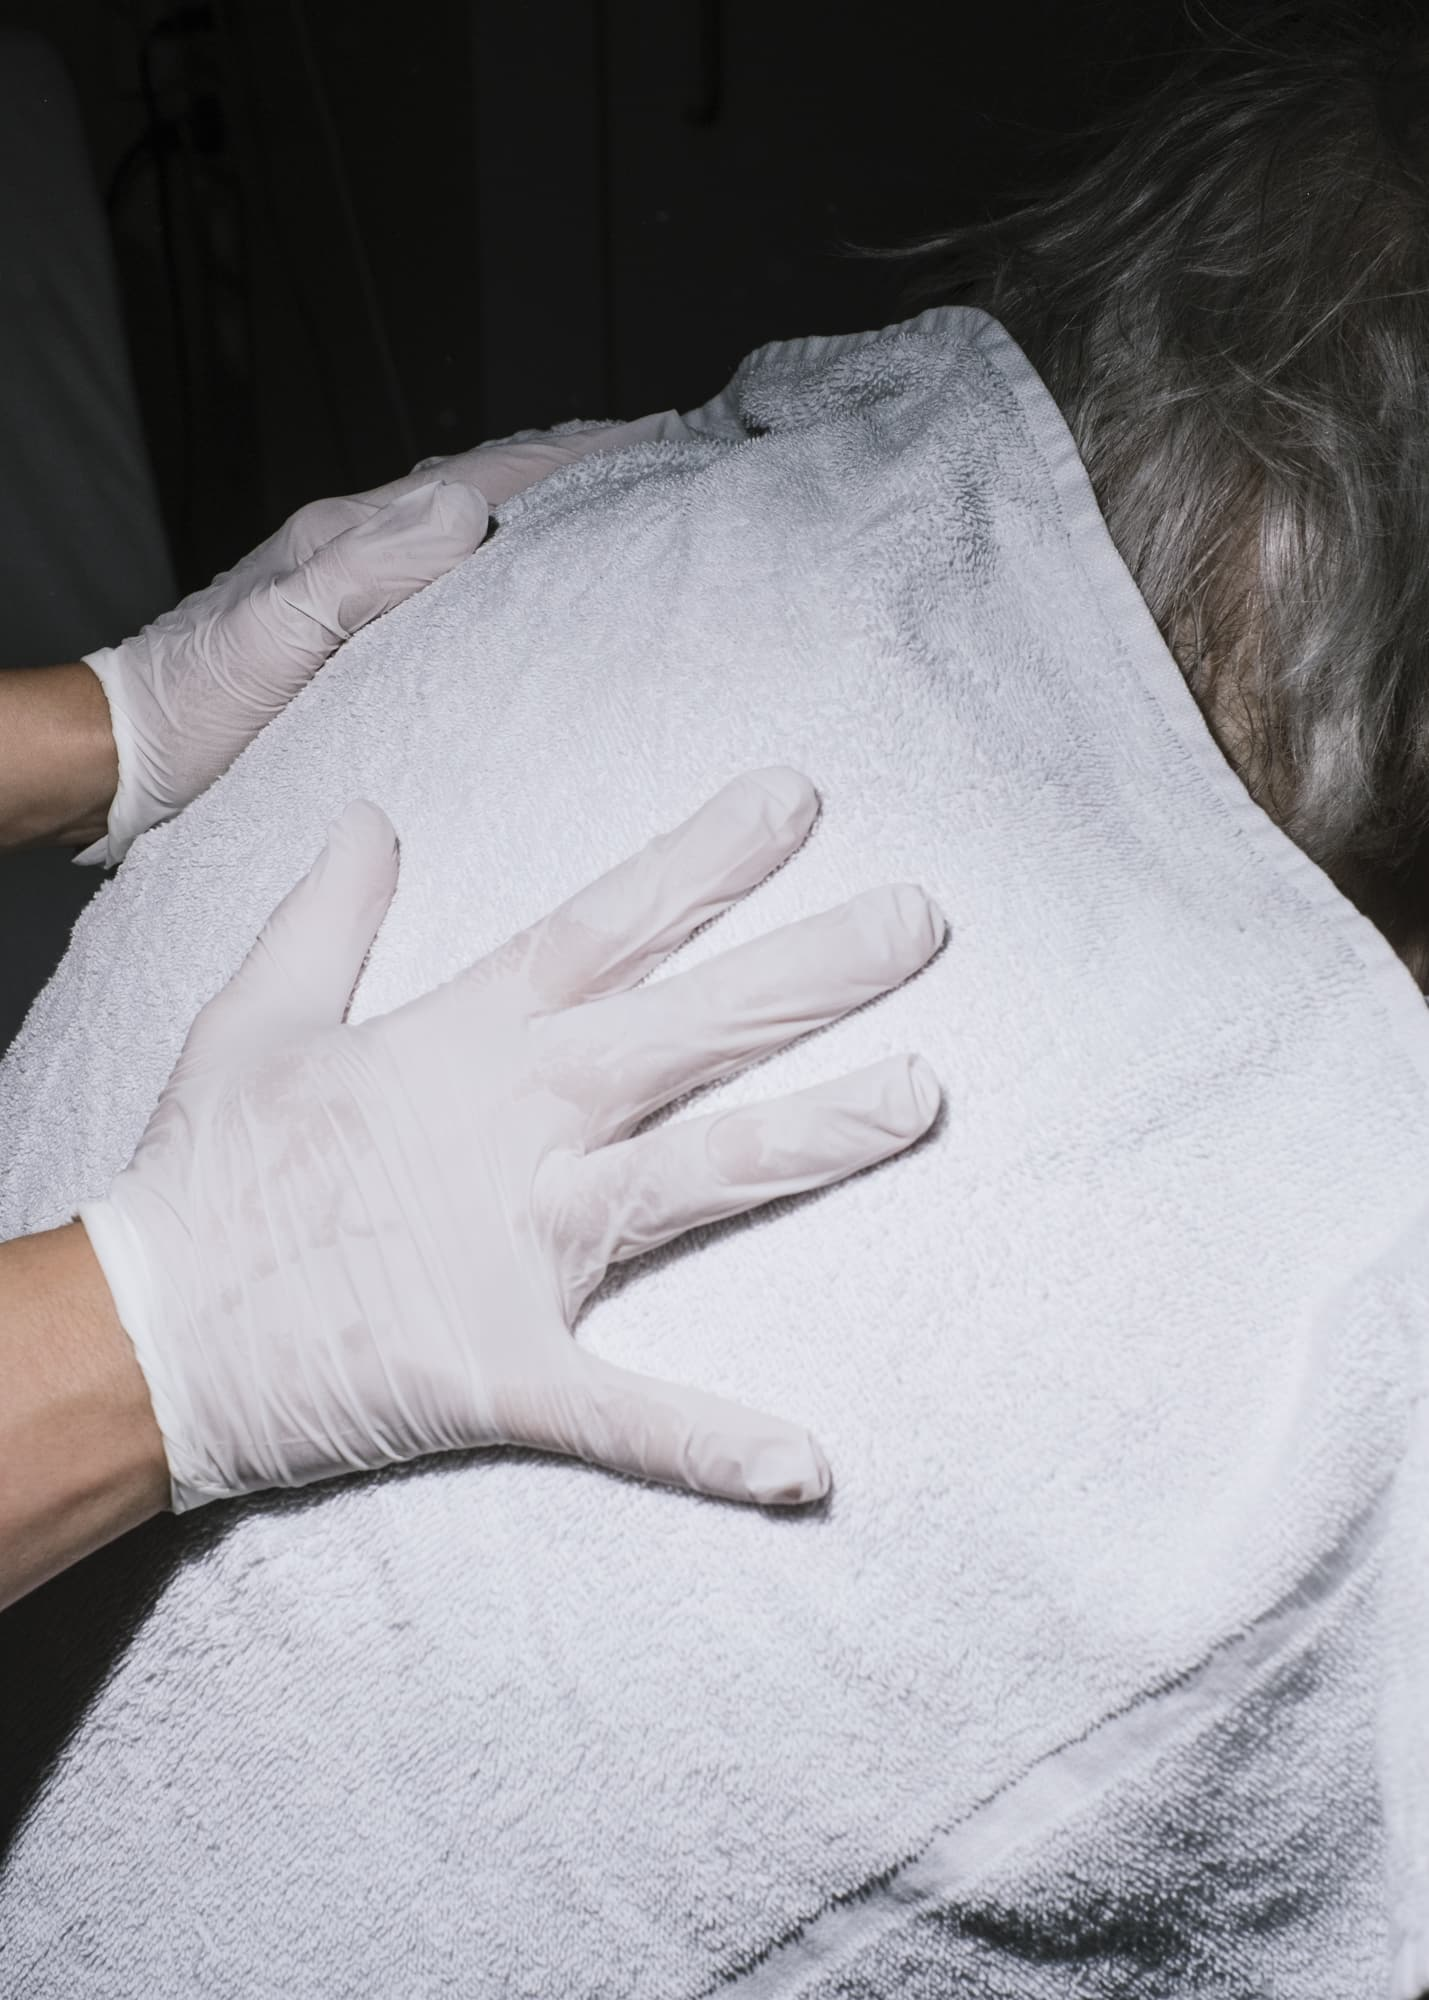 Nicht muede werden —  Hand detail of a nurse wiping sweat off a patient's back with a towel